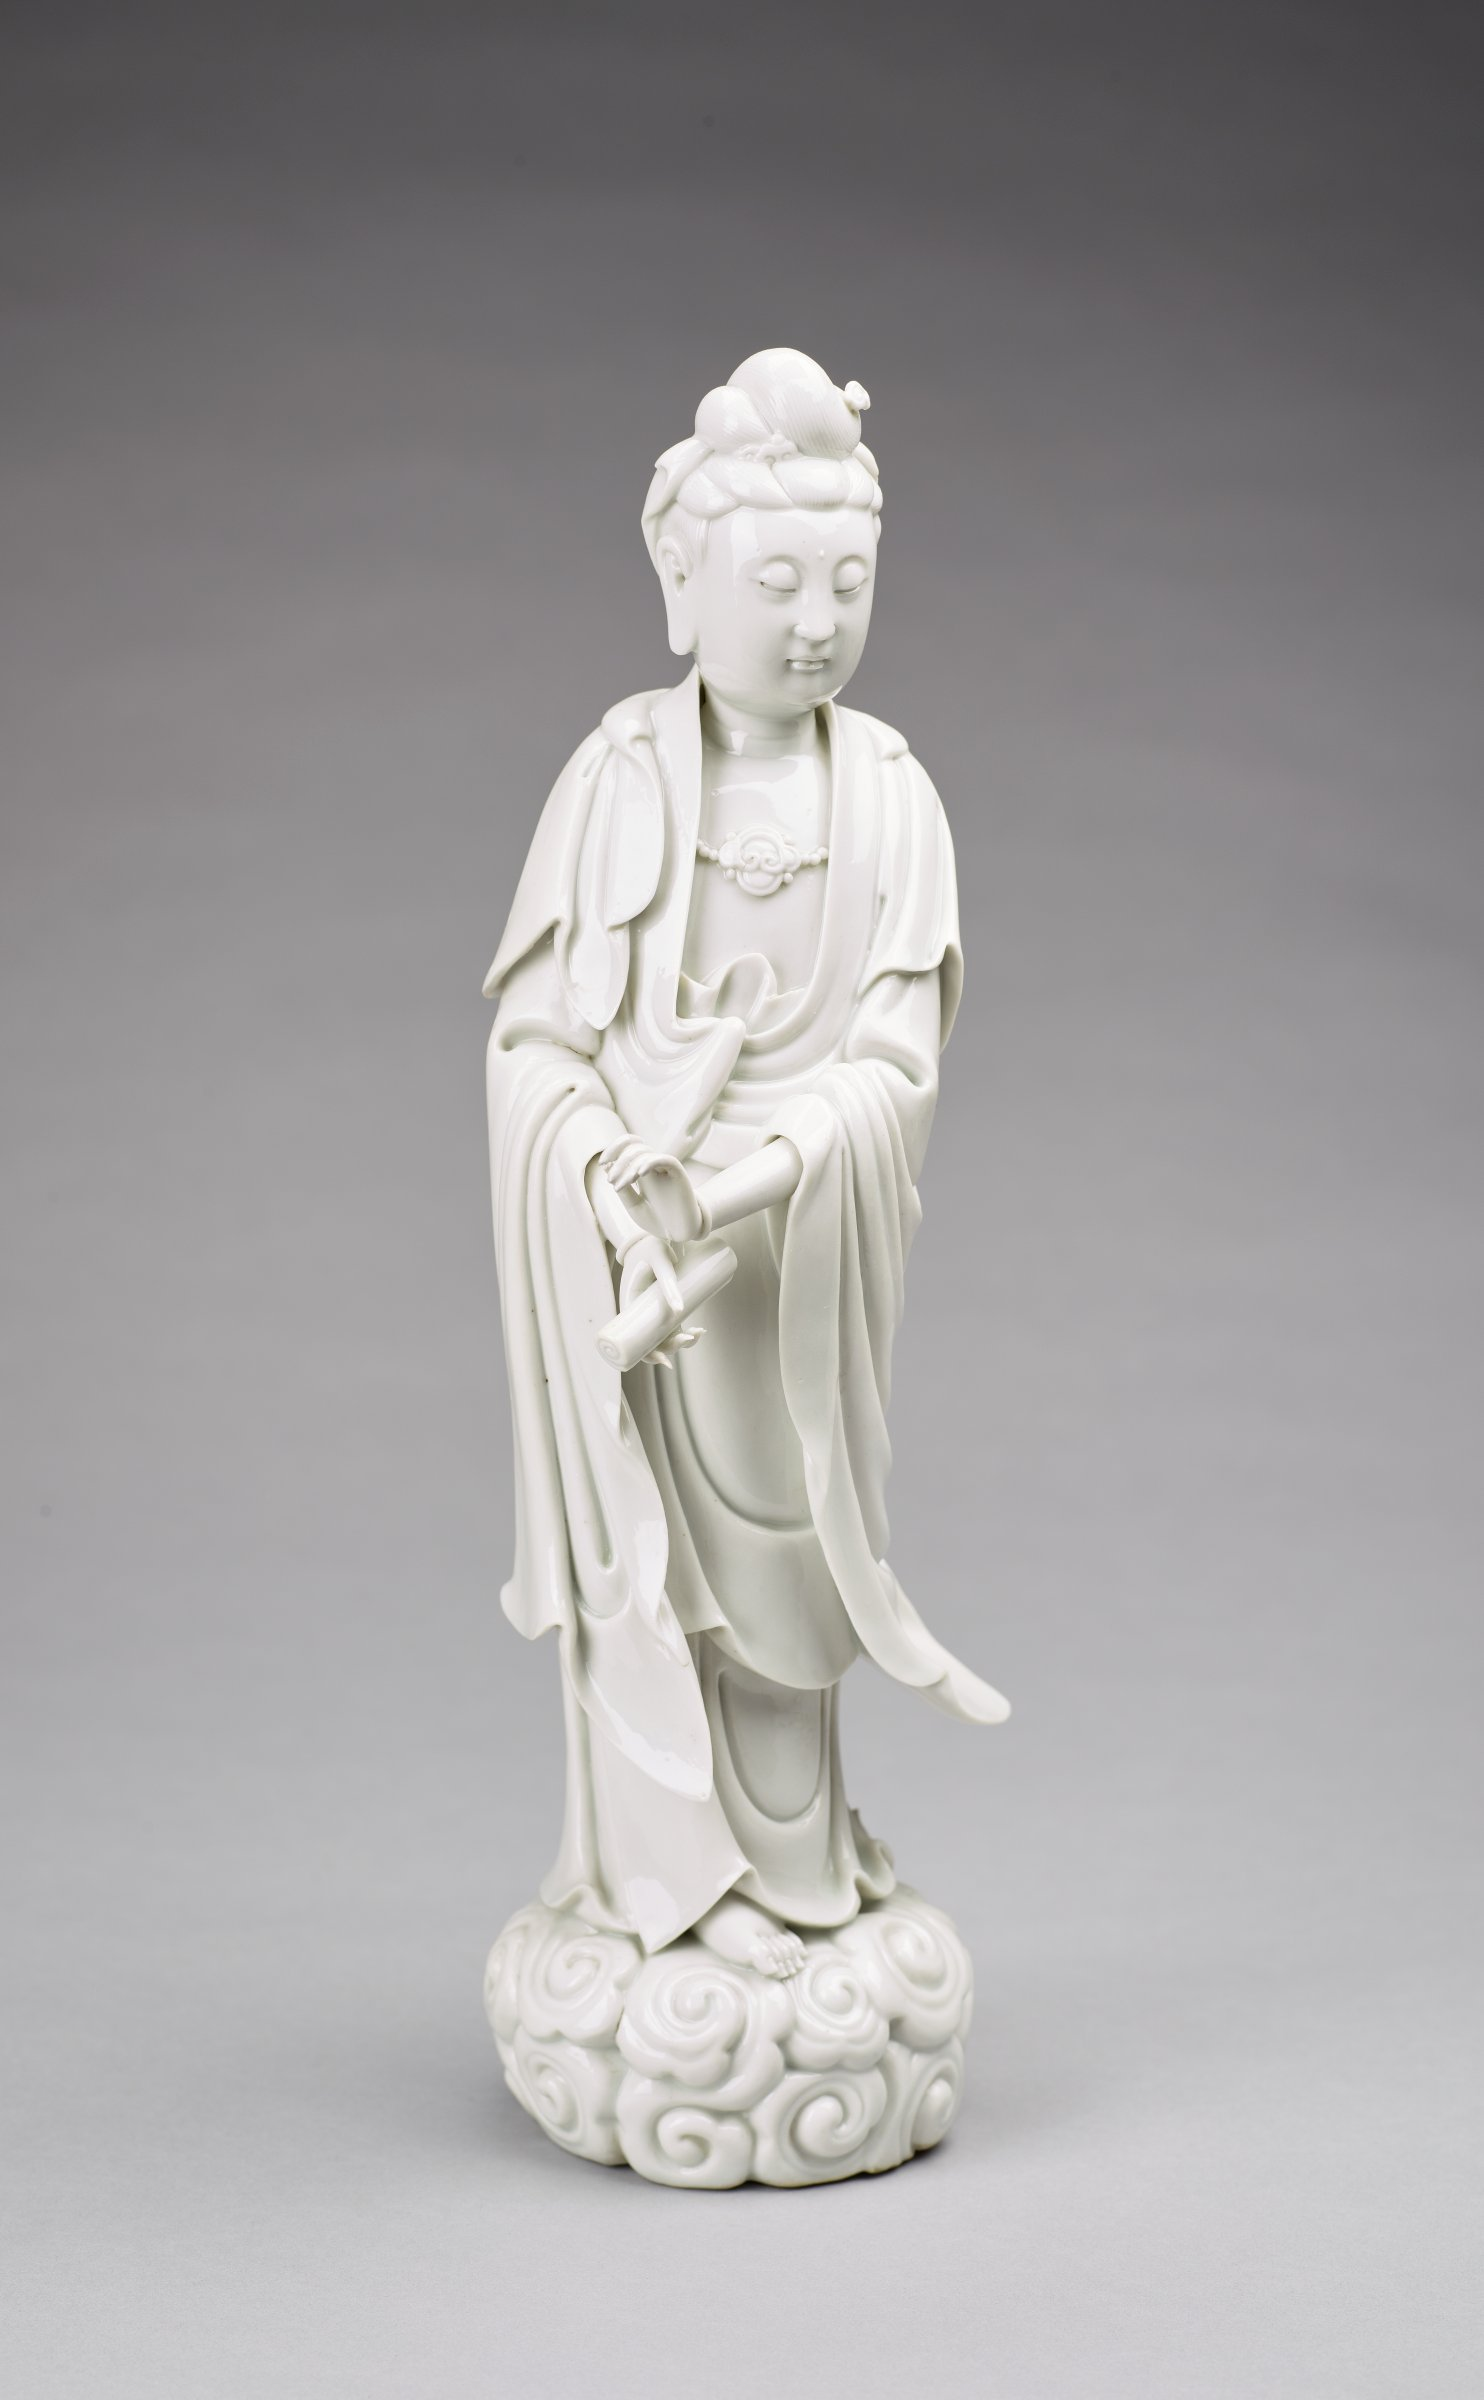 Standing figure of Guanyin on clouds, holding a scroll.